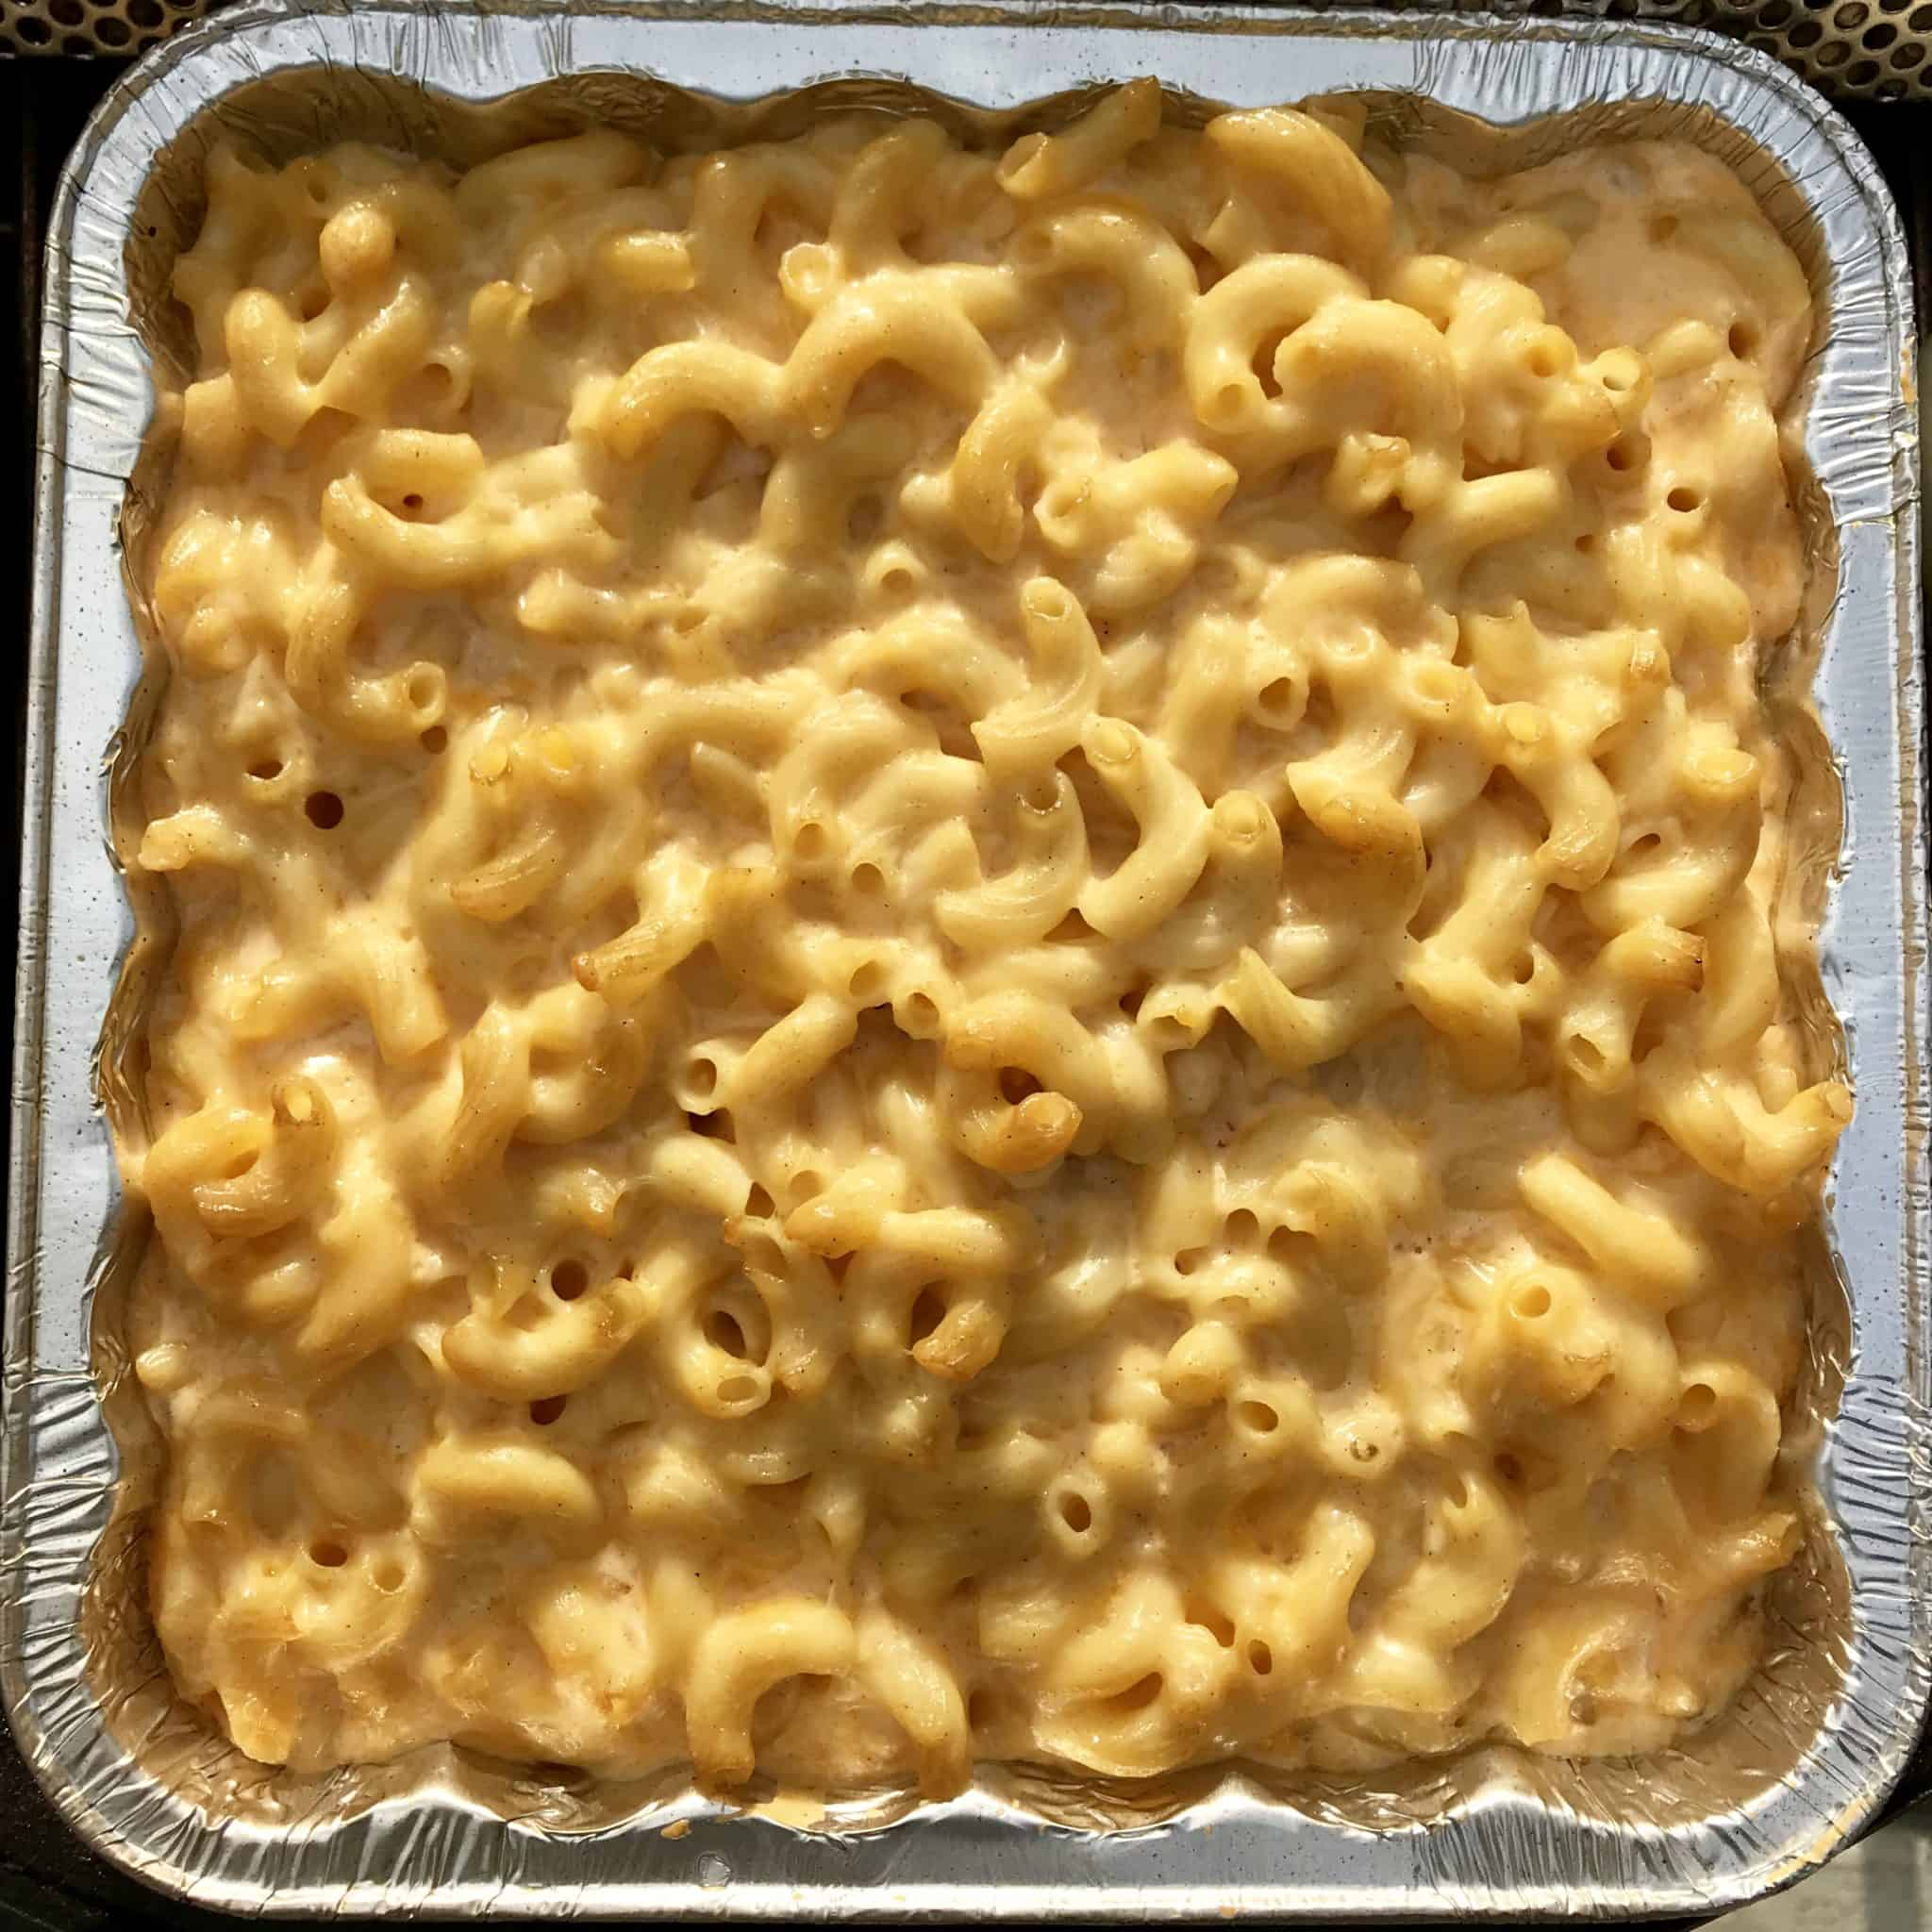 Smoked Mac and cheese